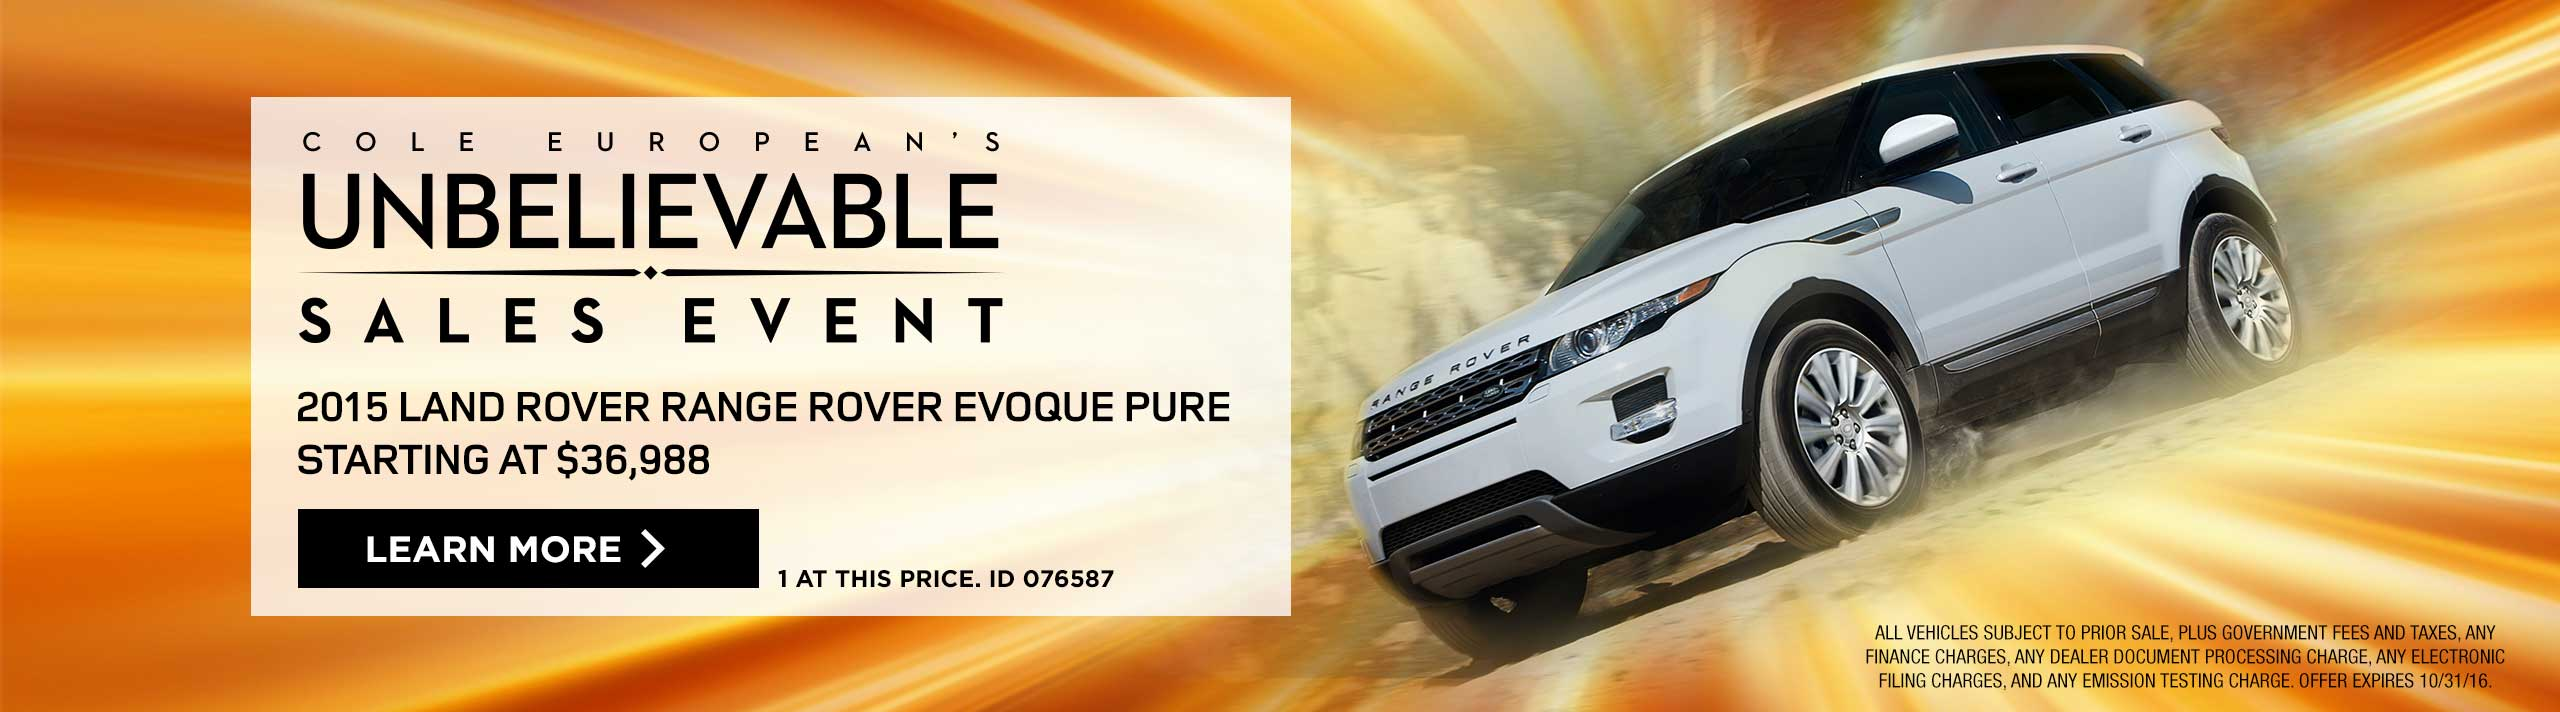 Land Rover - Unbelievable Sales Event